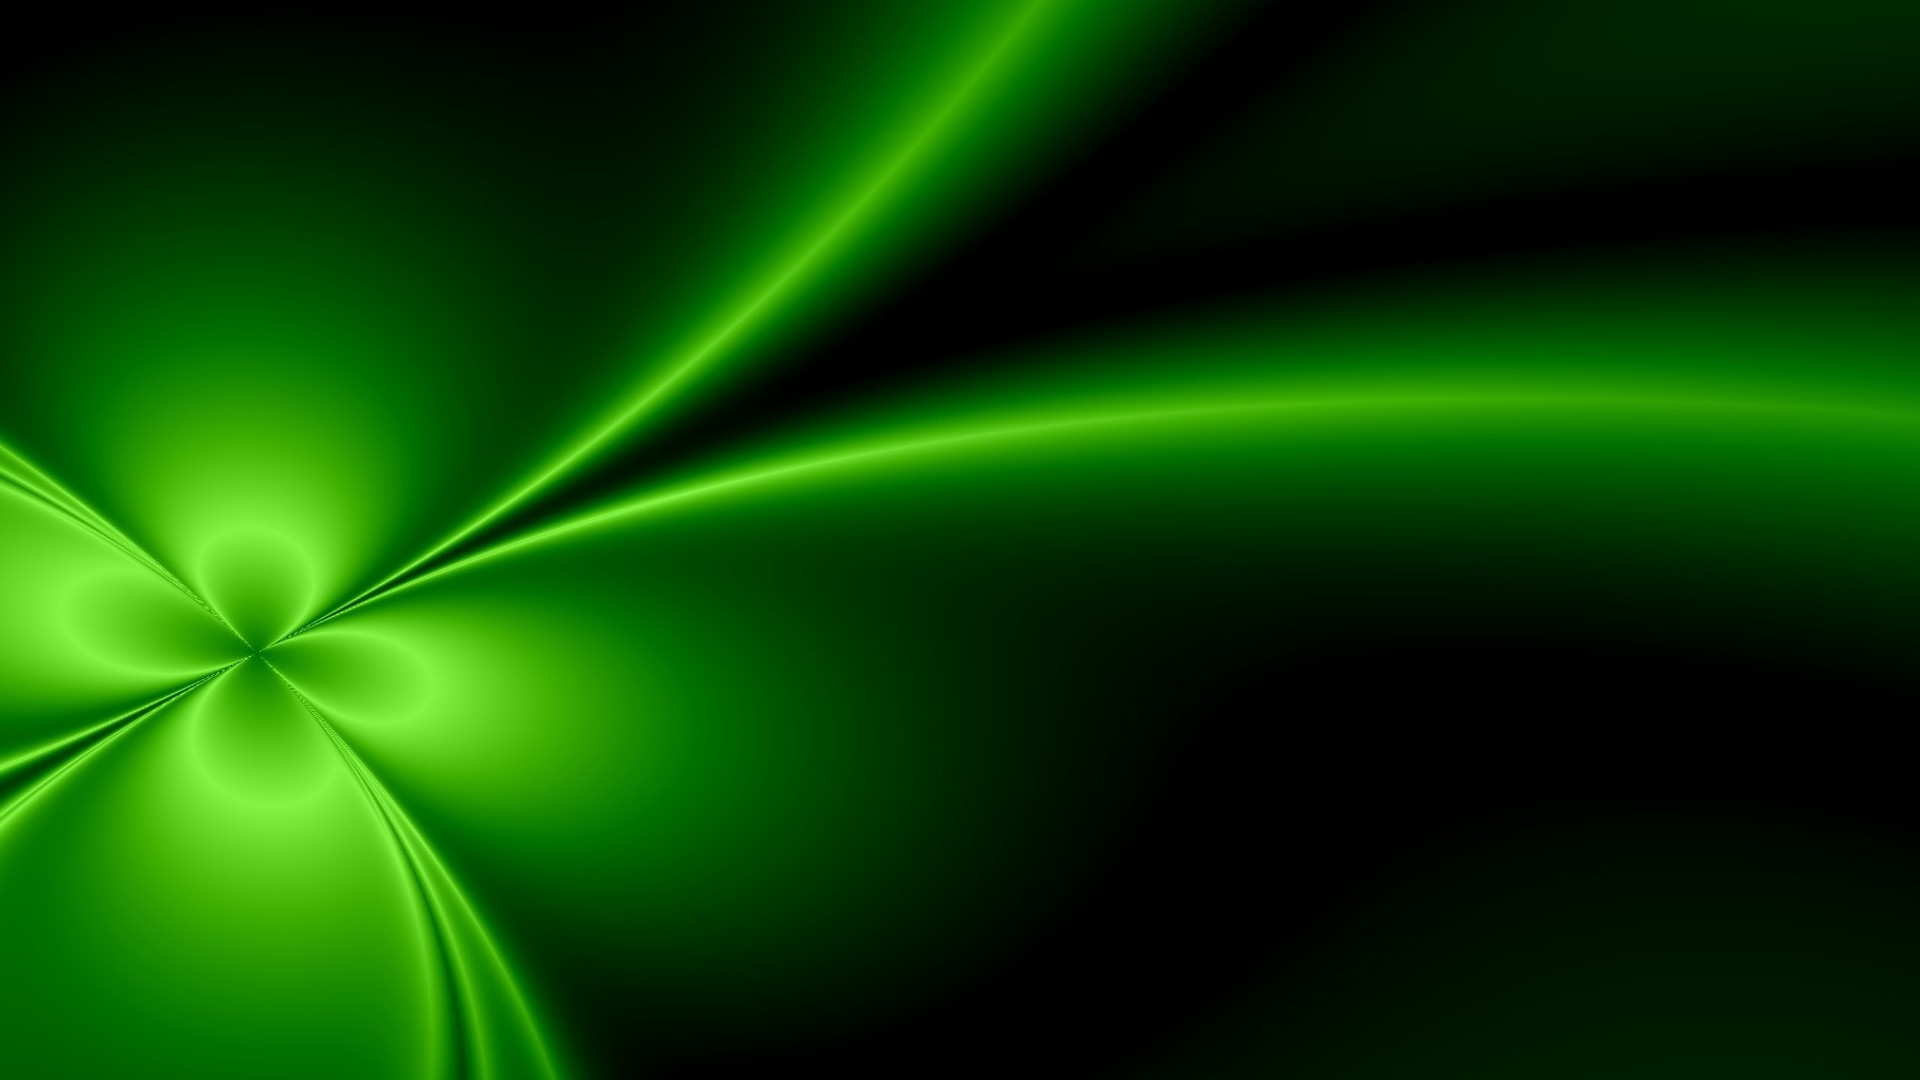 download Four Leaf Clover Pictures Wallpaper Best Cool 1920x1080